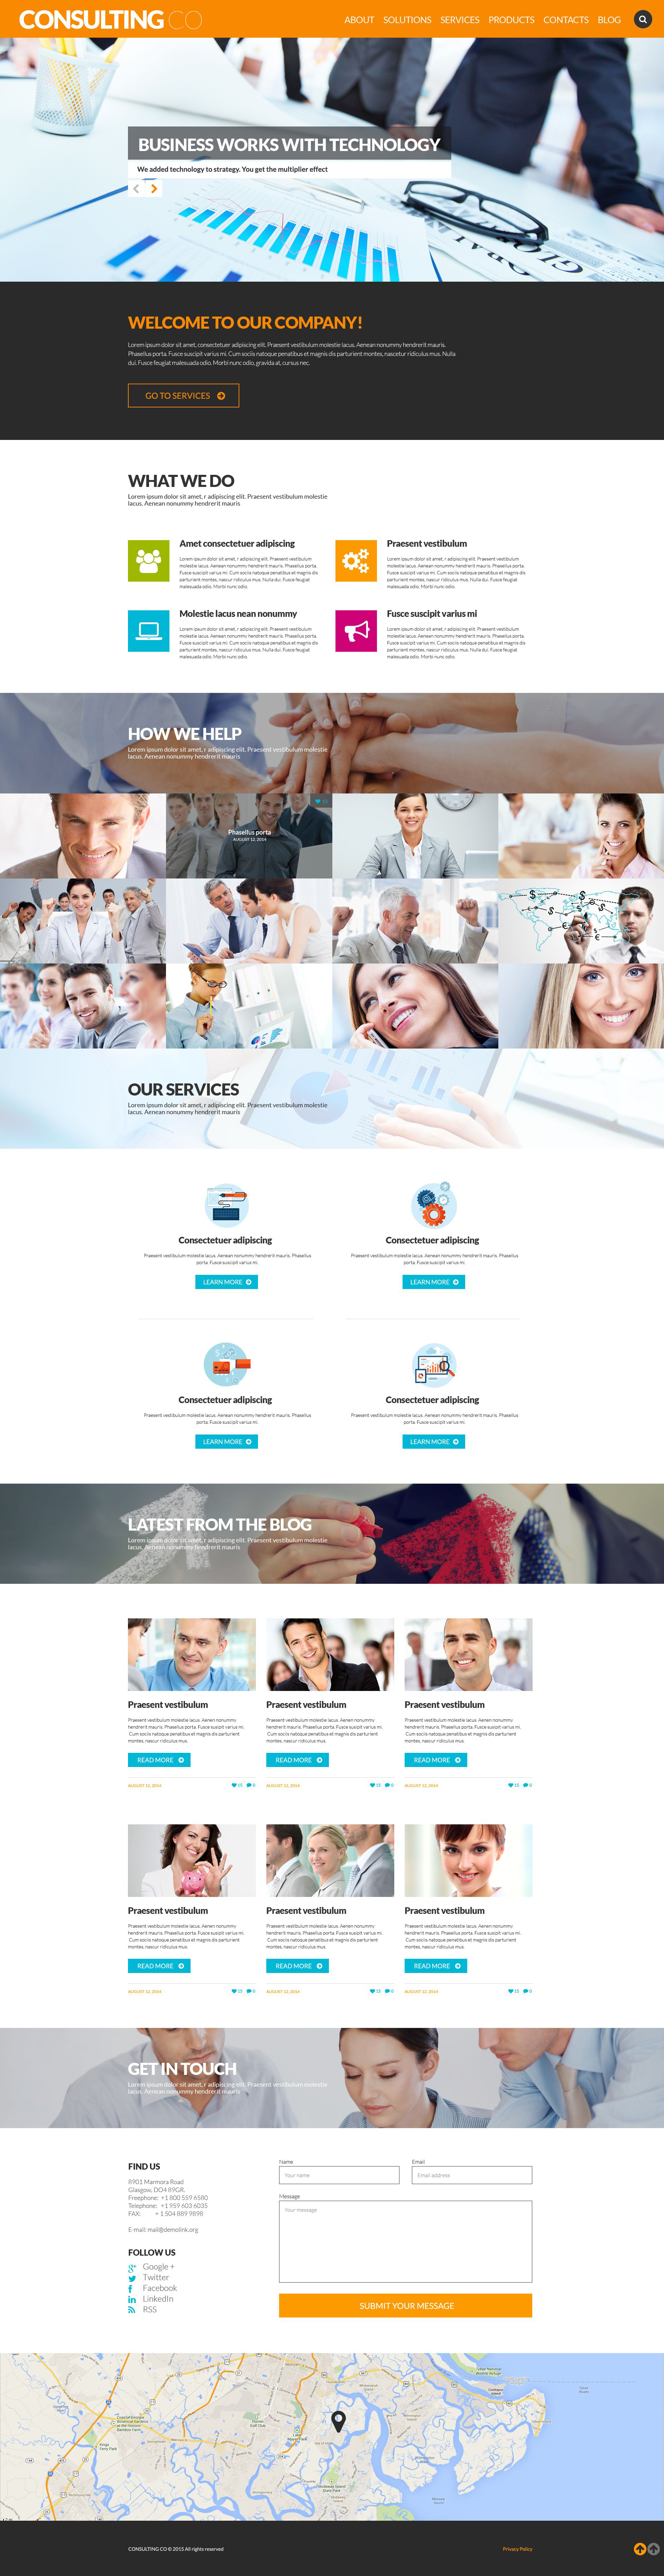 Consulting Co WordPress Theme - screenshot